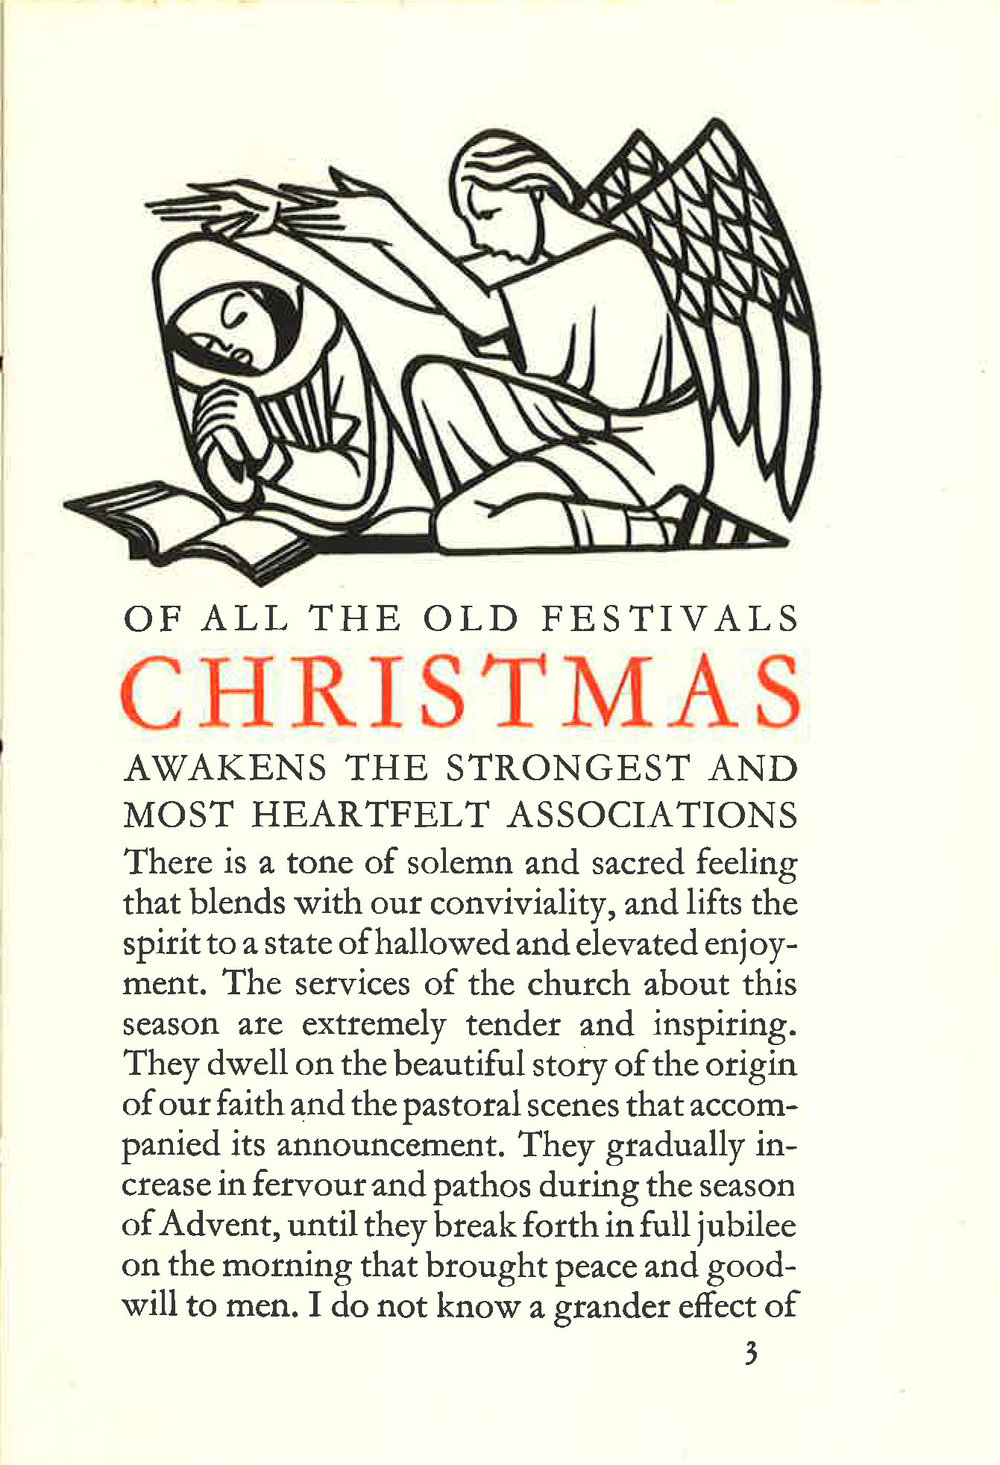 Opening passage from Washington Irving's Christmas, Birmingham School of Printing, 1936